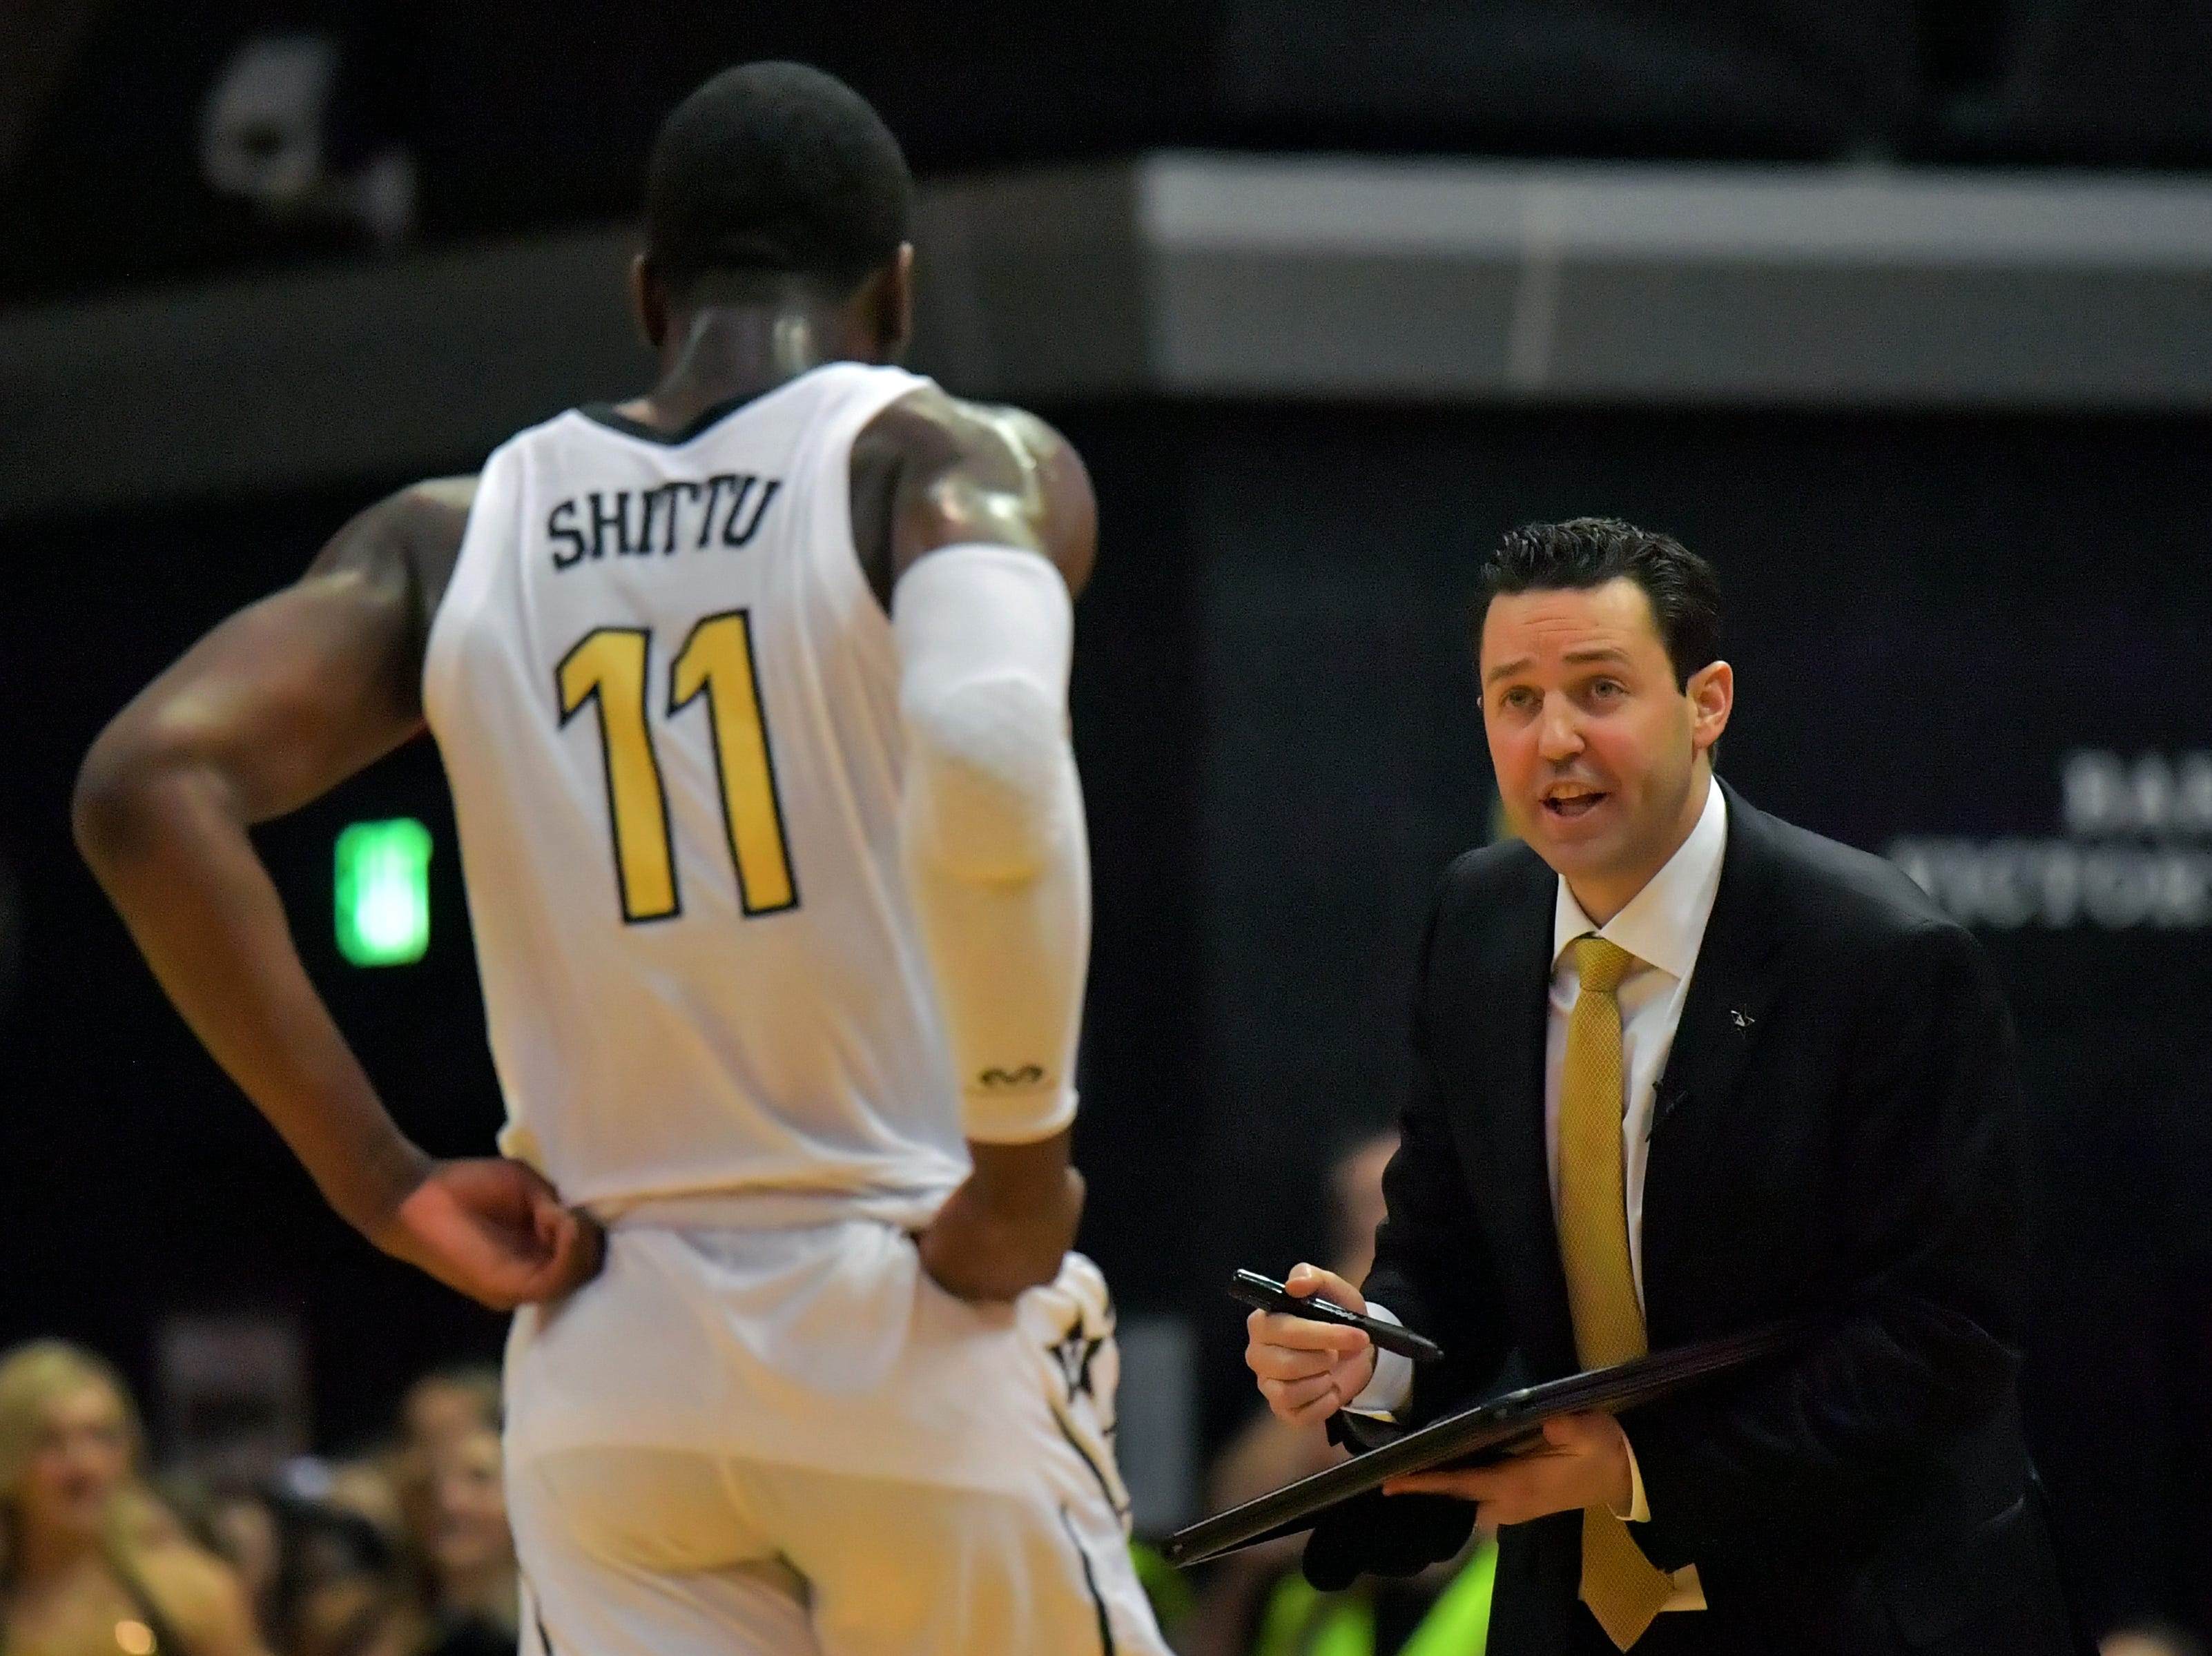 Feb 9, 2019; Nashville, TN, USA; Vanderbilt Commodores head coach Bryce Drew talks with Vanderbilt forward Simisola Shittu (11) during the second half against the Alabama Crimson Tide at Memorial Gymnasium. Alabama won 77-67. Mandatory Credit: Jim Brown-USA TODAY Sports